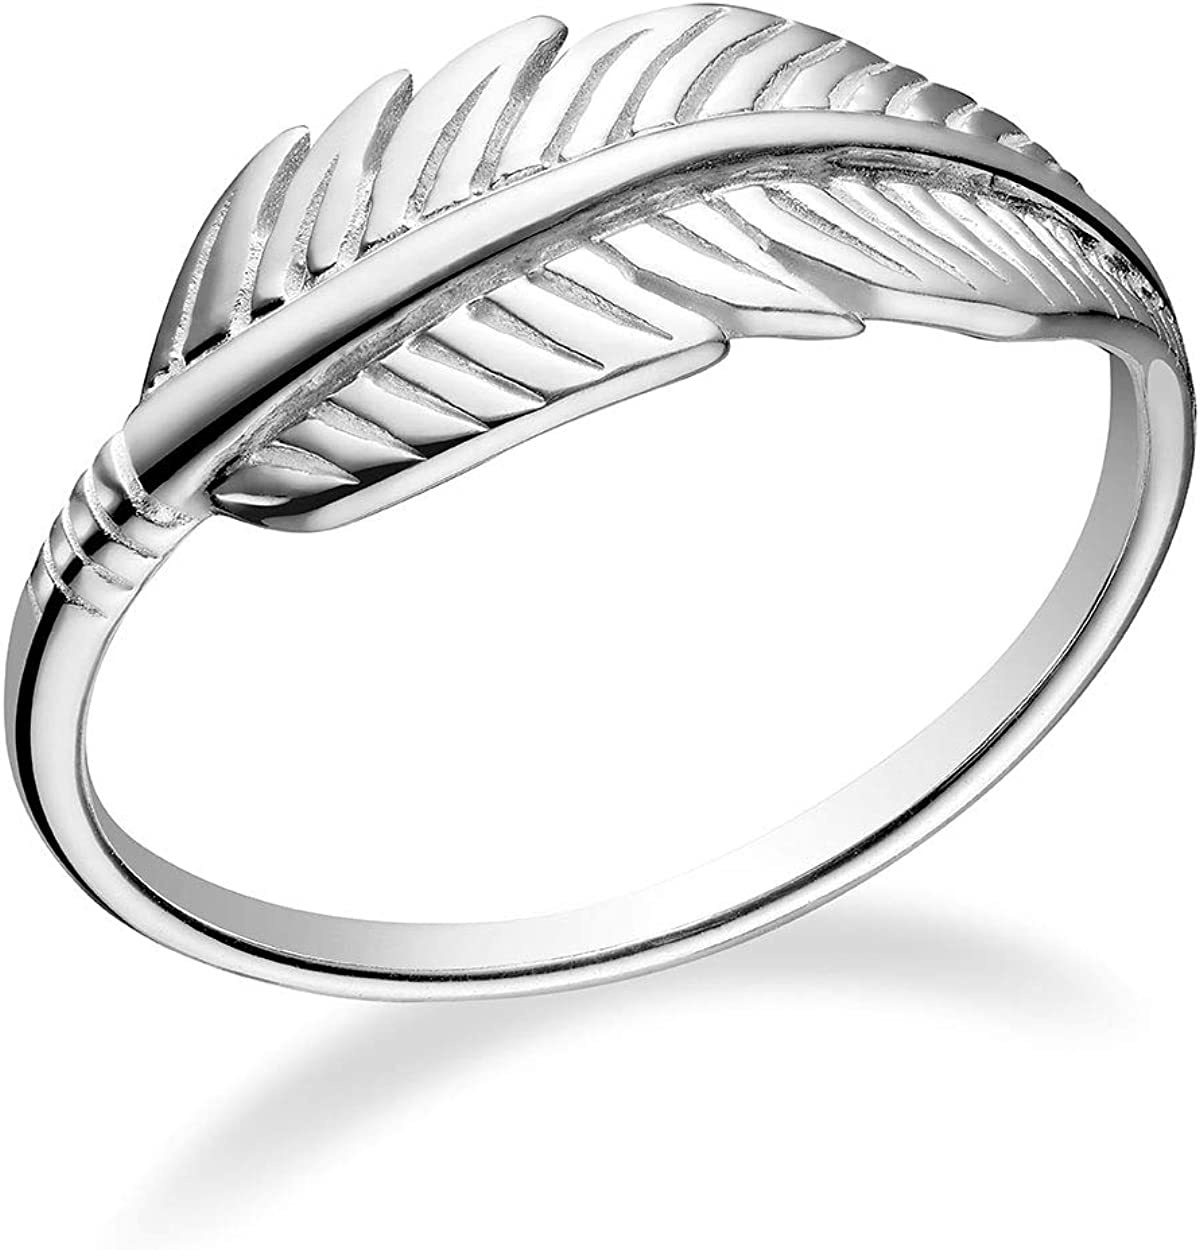 Sterling Silver Feather Silver925 Ring Gift For Her Women Ring Boho Ring white zirconium silver ring